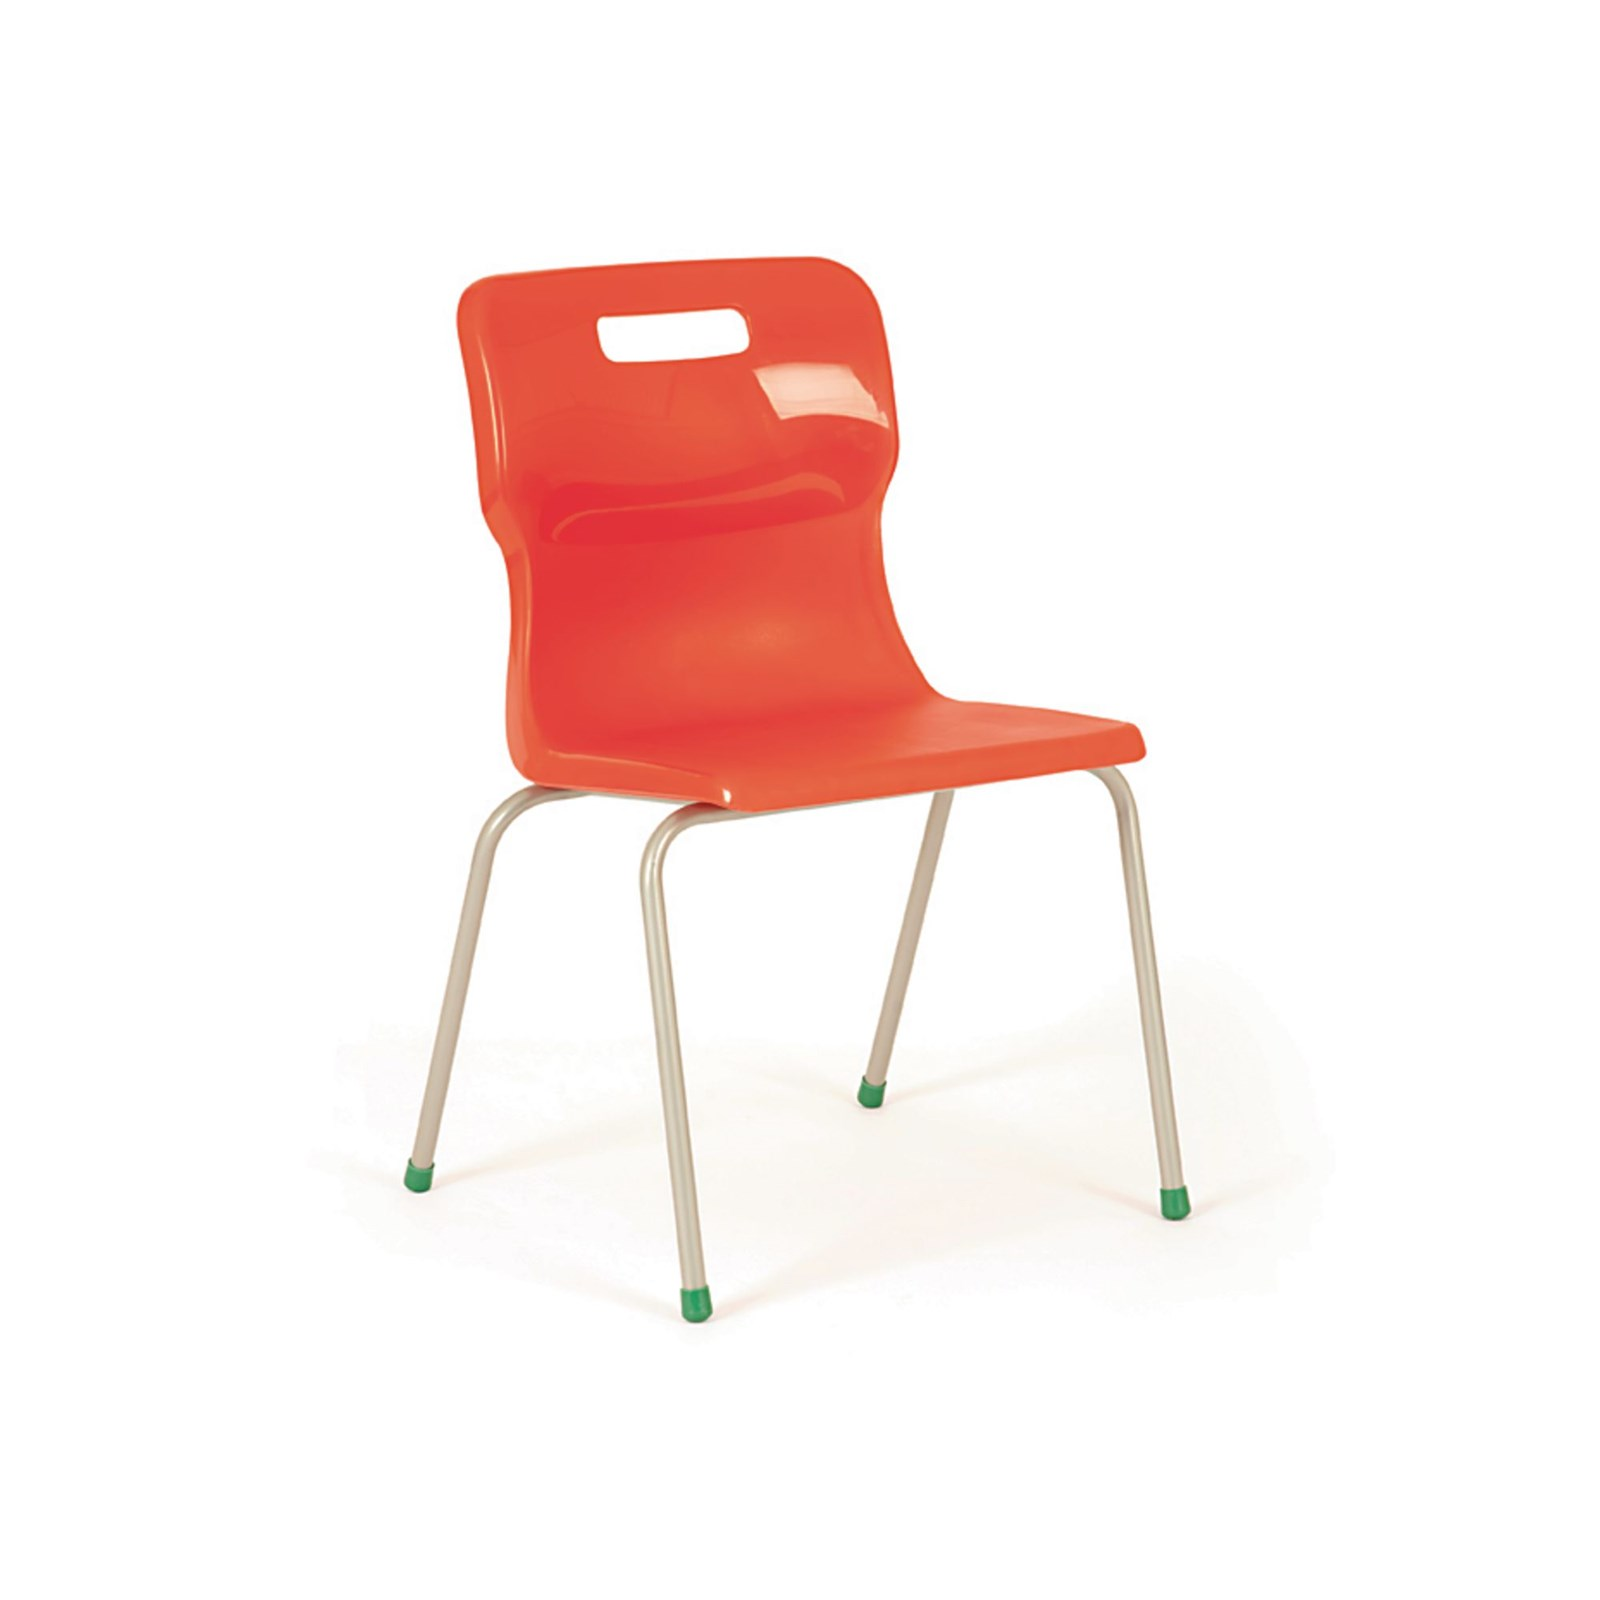 Titan 4 Leg Chair Size 3 Ages 5 7 Orange